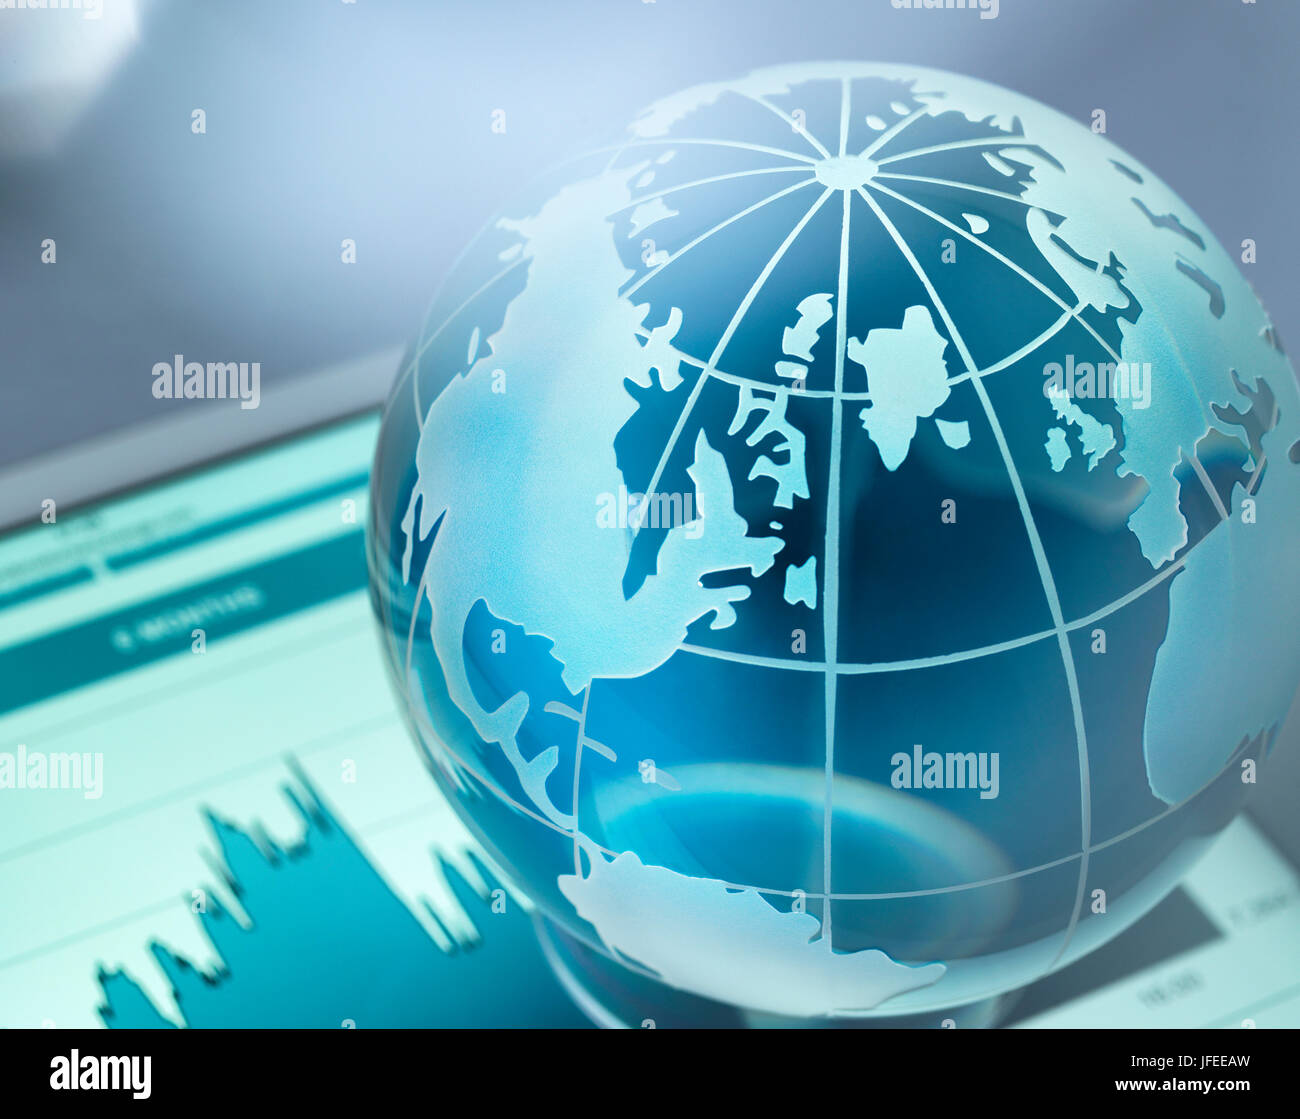 Global investments, conceptual image. Glass globe sitting on a digital table showing an increase in stock price. - Stock Image